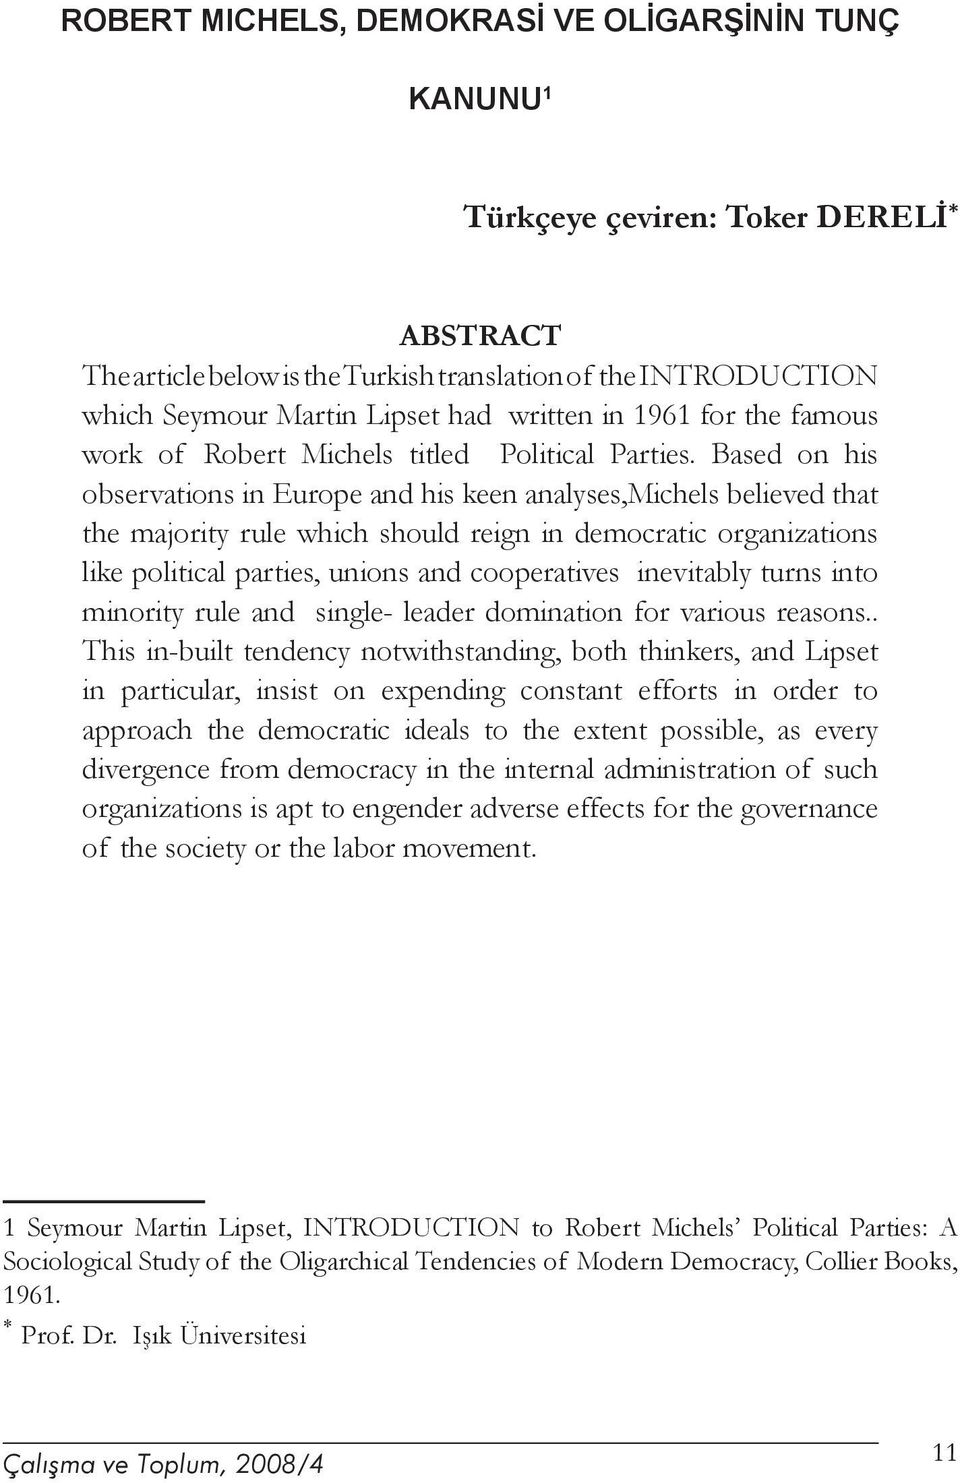 Based on his observations in Europe and his keen analyses,michels believed that the majority rule which should reign in democratic organizations like political parties, unions and cooperatives